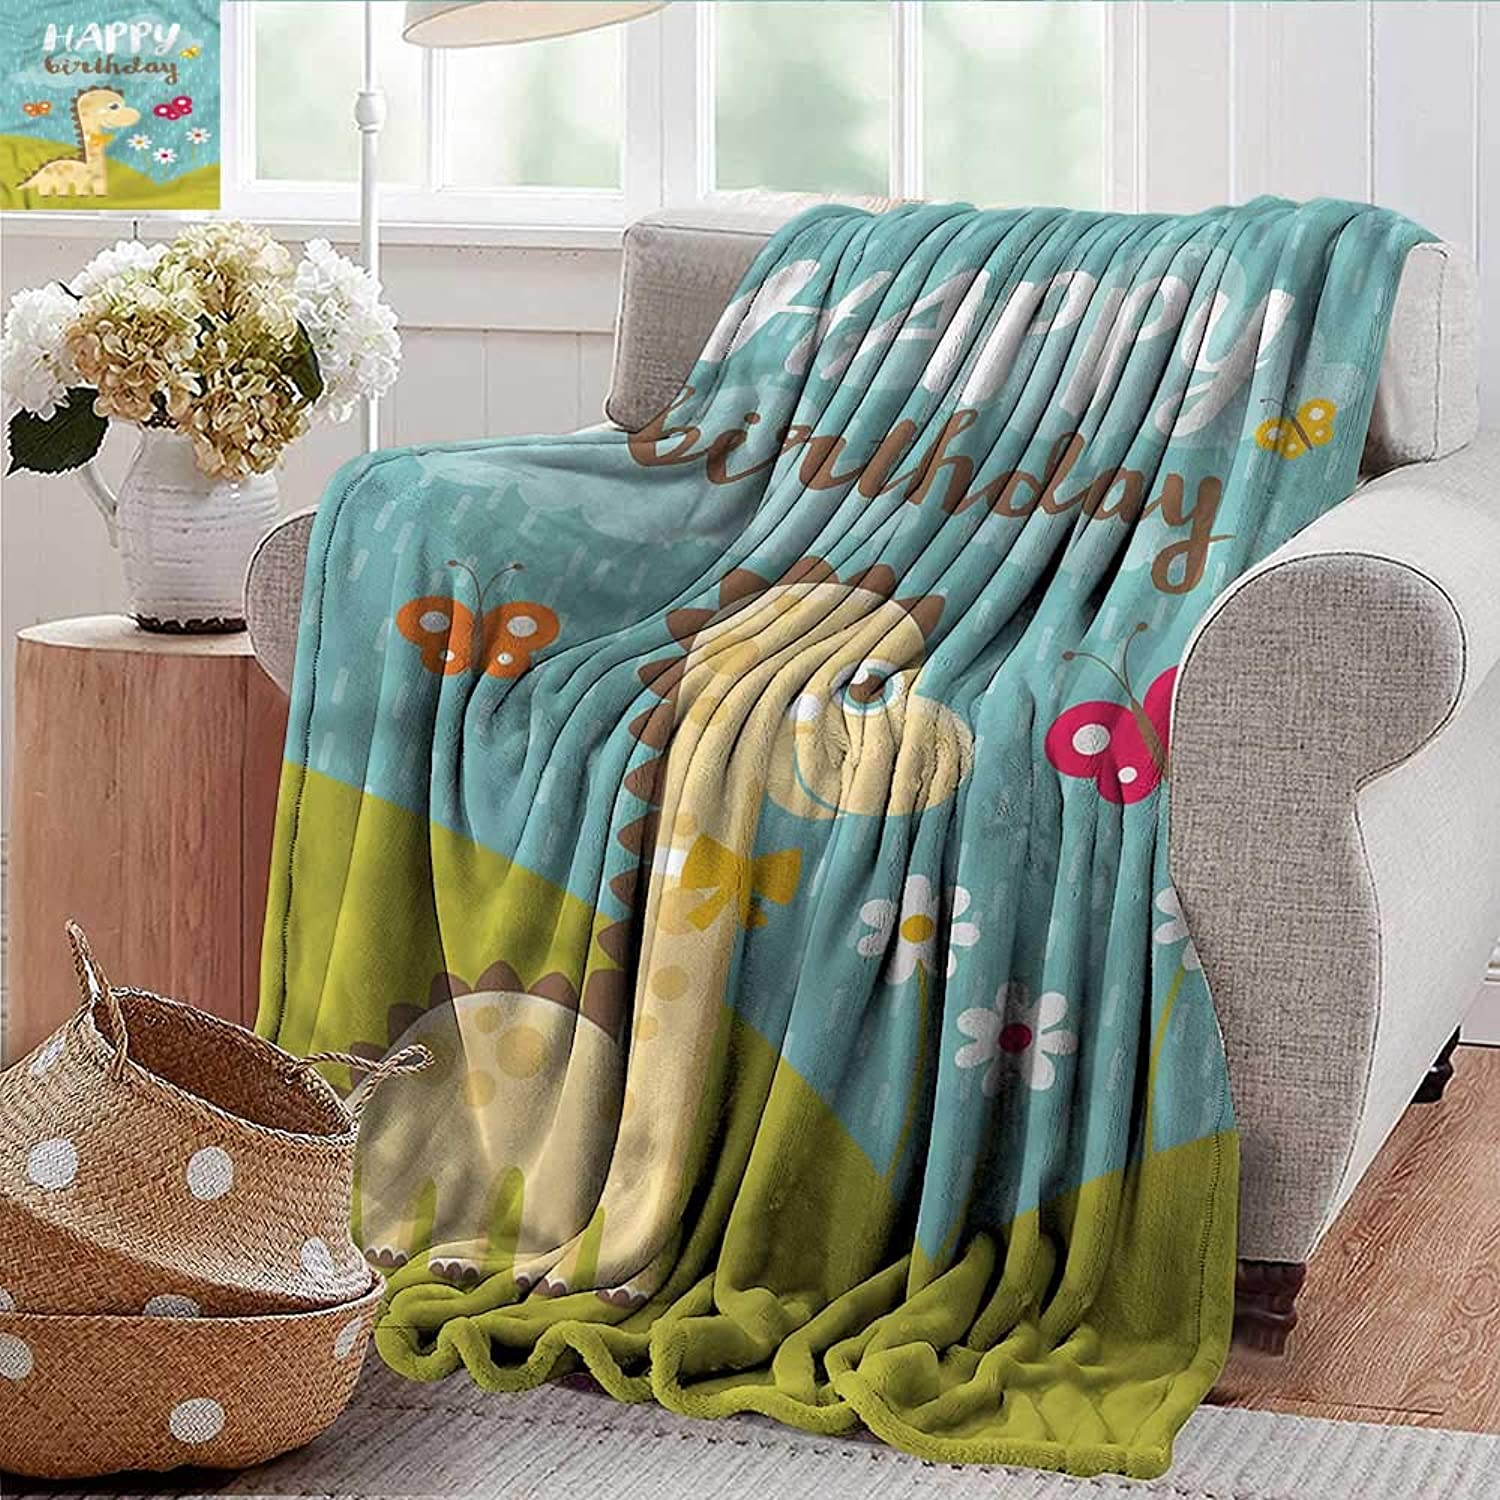 Xaviera Doherty Swaddle Blanket Dinosaur Party,Friend Baby Dino colorful   Home, Couch, Outdoor, Travel Use 50 x60